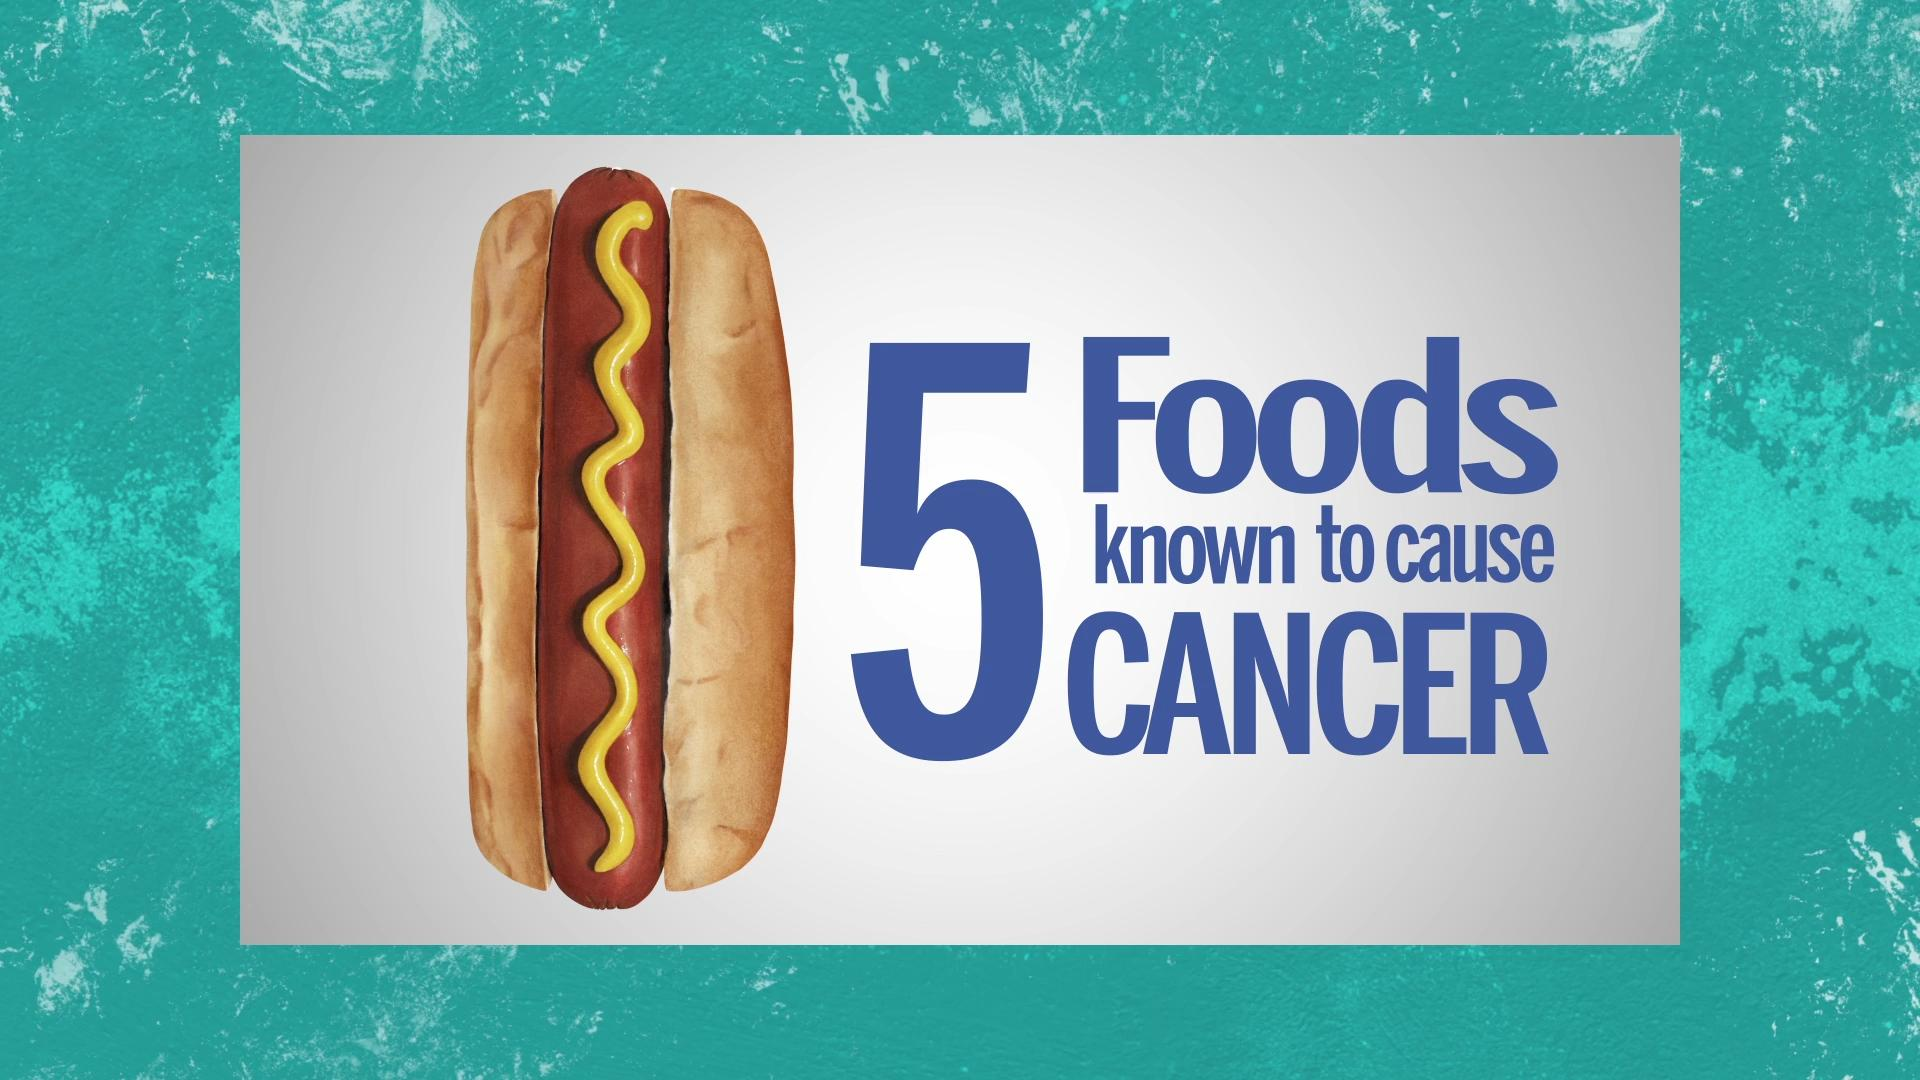 It's linked to a higher risk of cancer